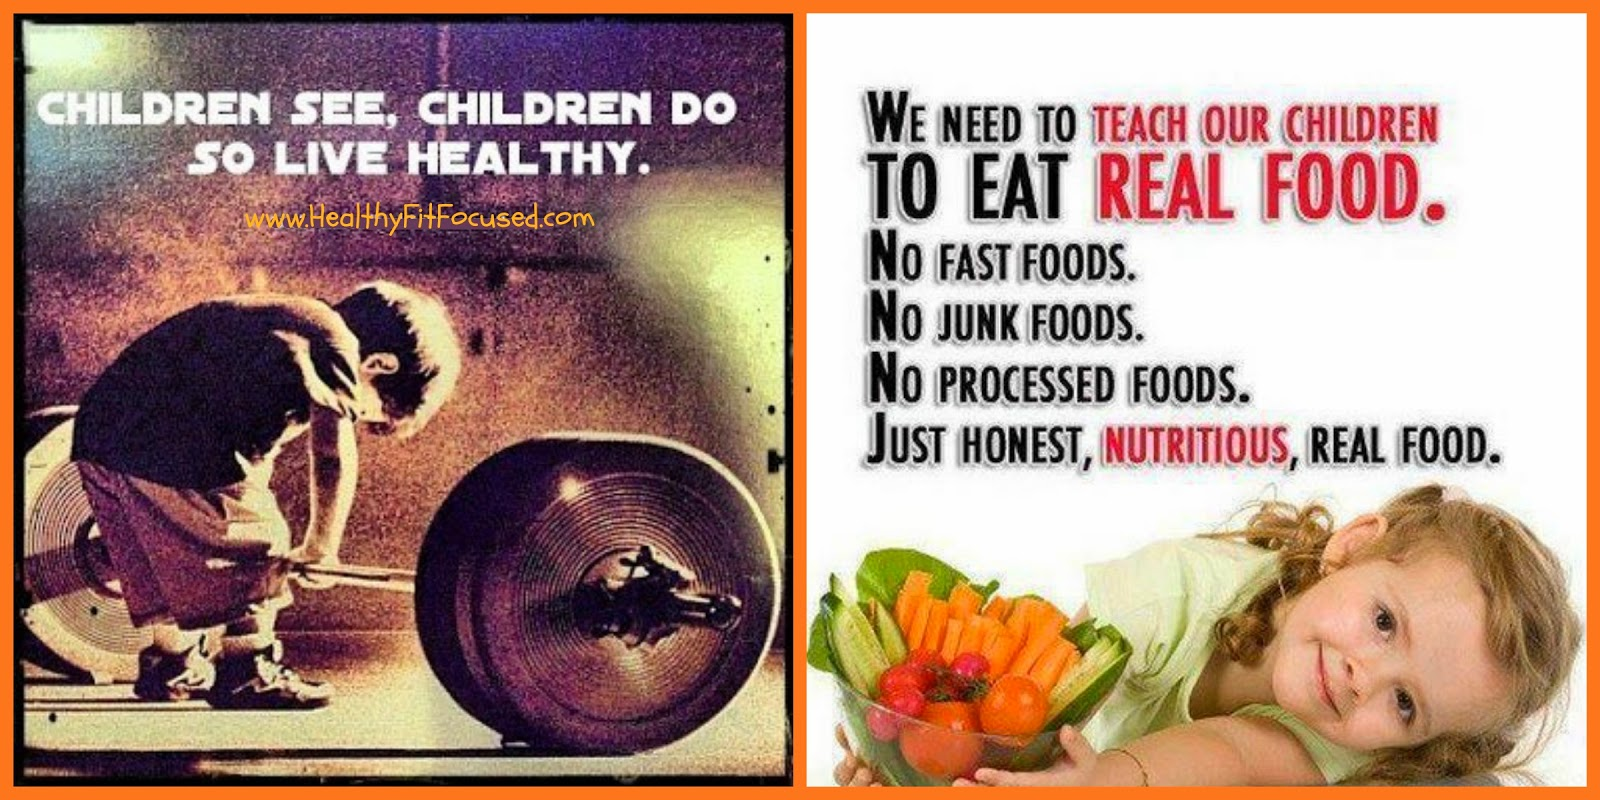 Healthy Children, www.HealthyFitFocused.com